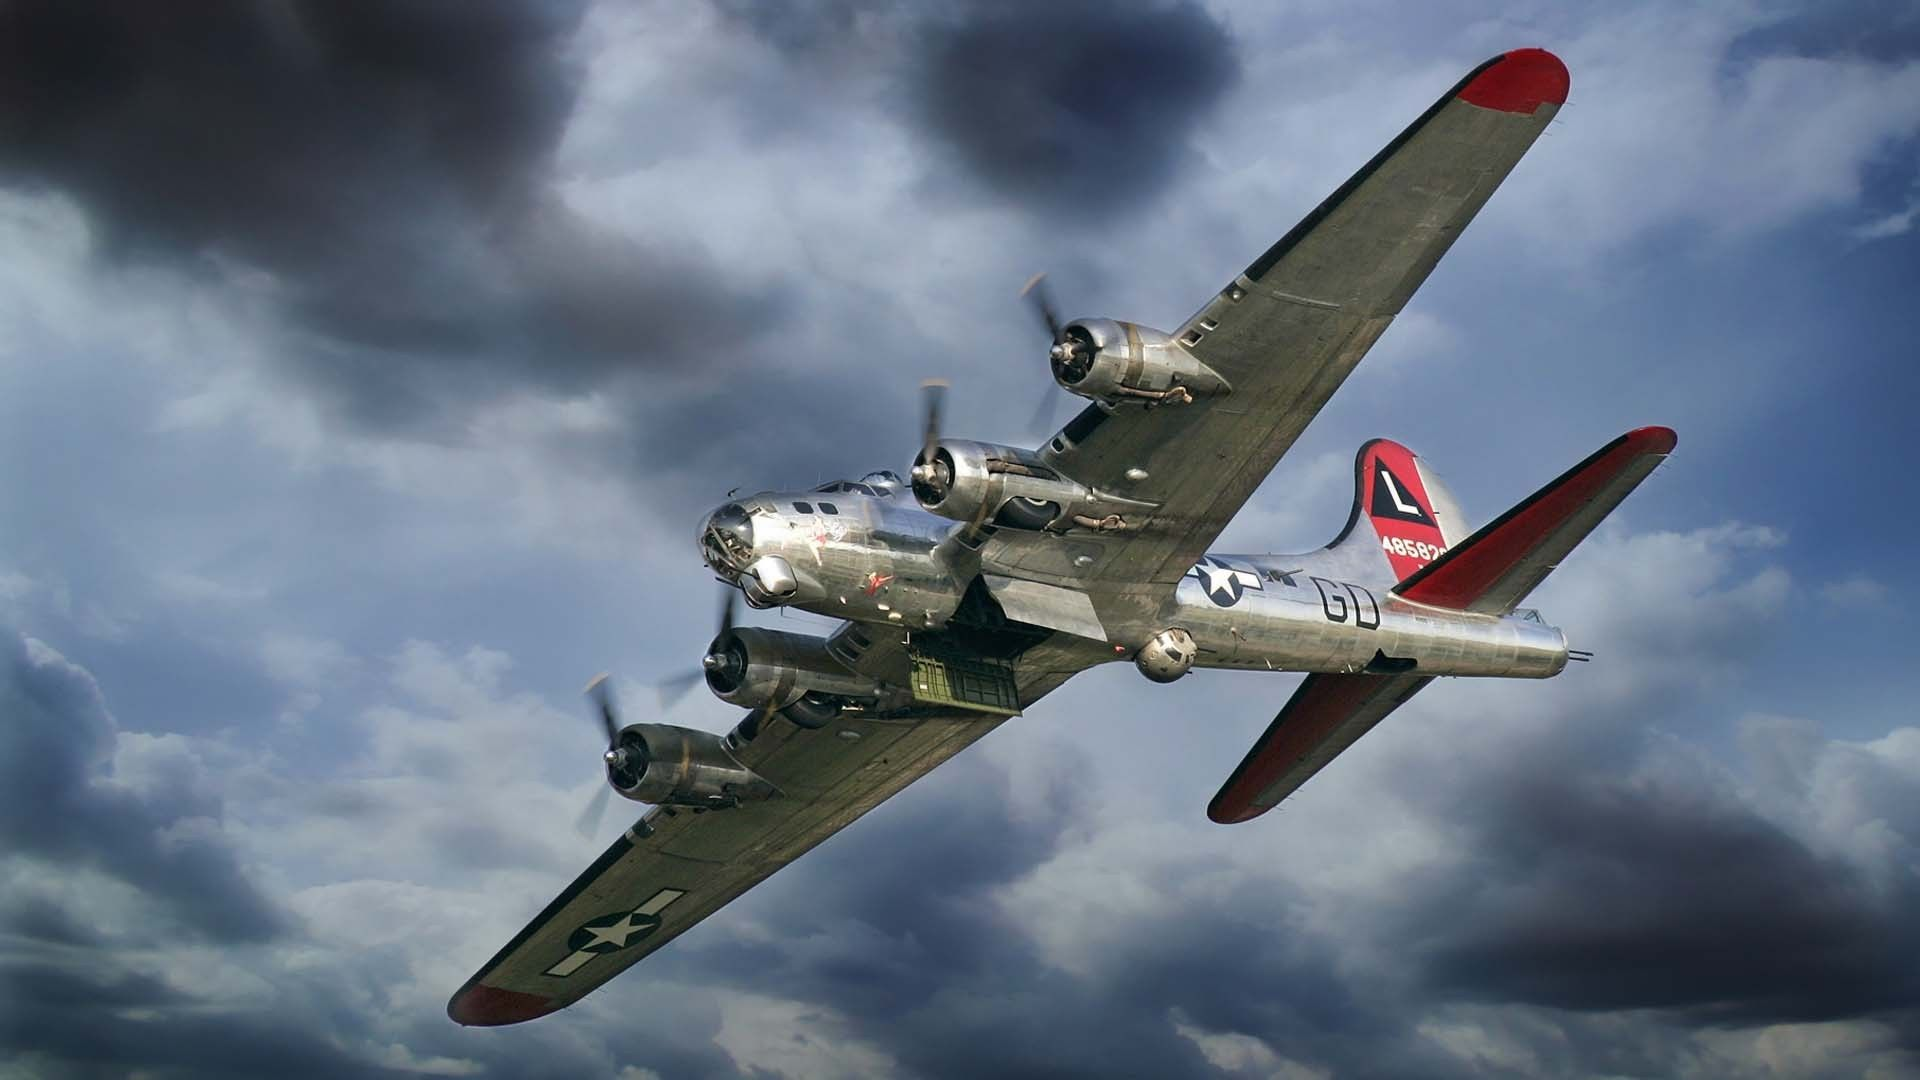 Boeing B 17 Flying Fortress Full Hd Wallpaper And Wwii